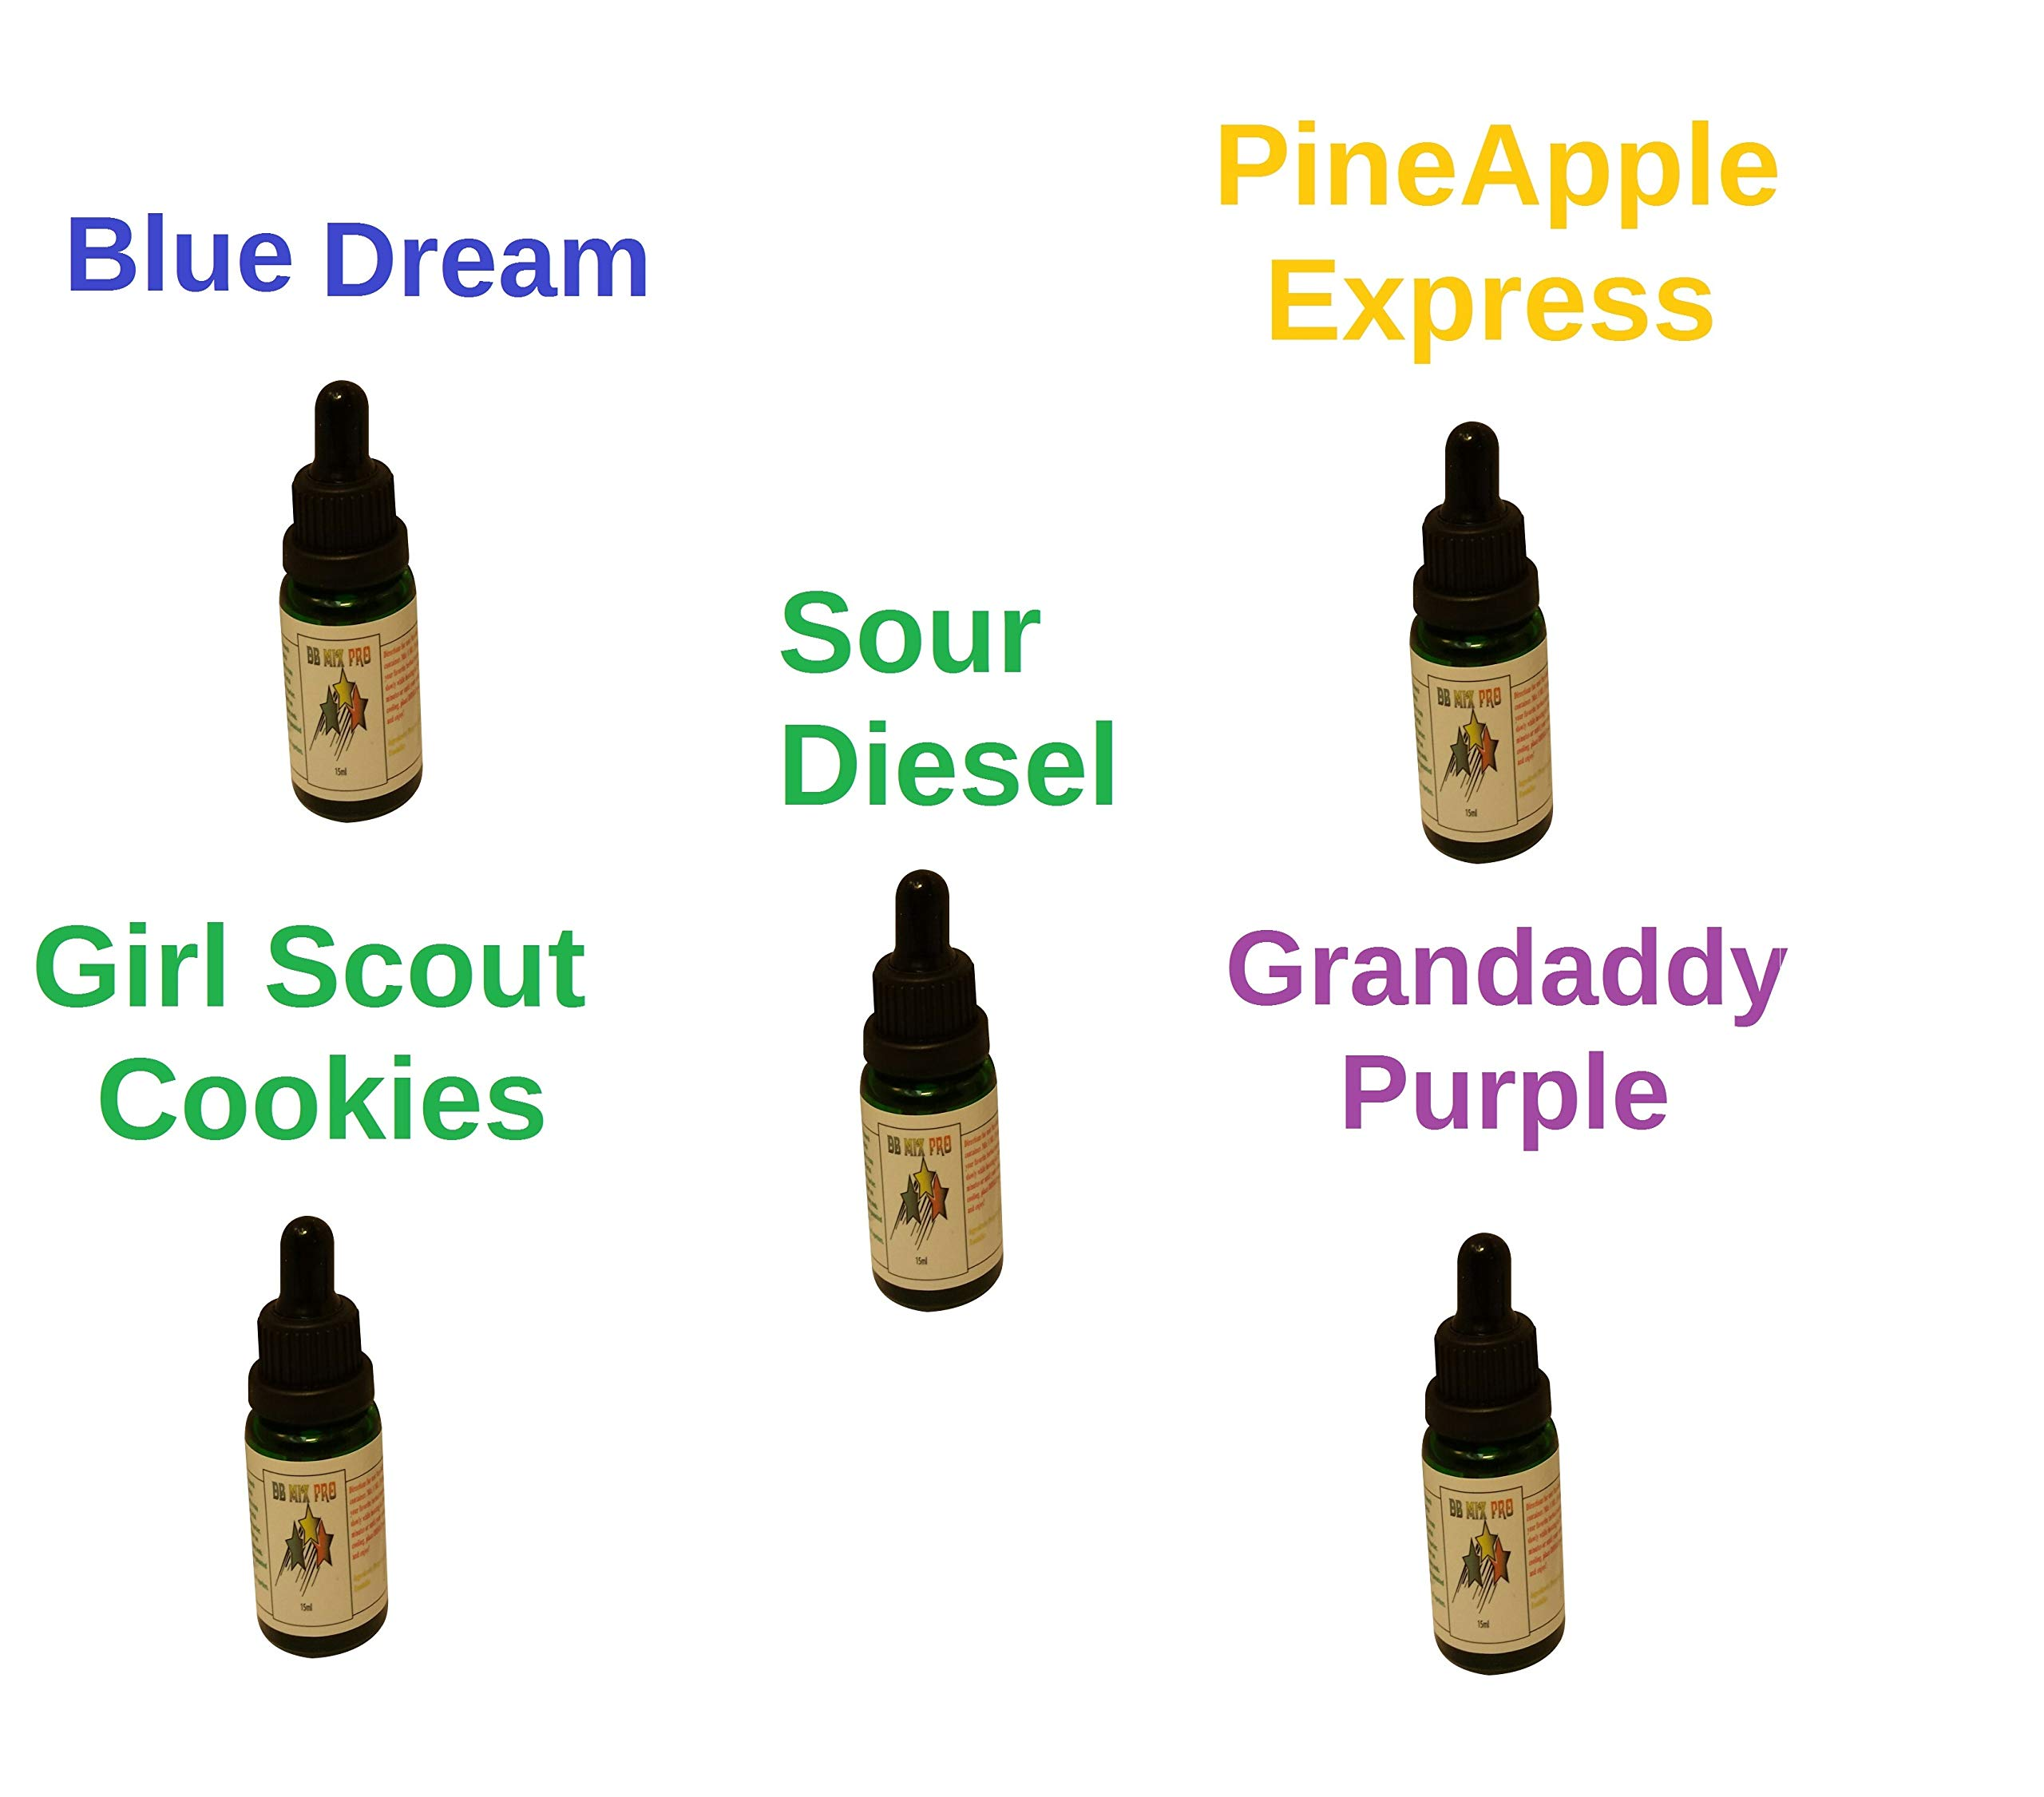 5 Pack of 15ml Bottles Terpene Infused Liquidizer 99% Pure Colorado Terpenes Strain Profiles by DJDesigns